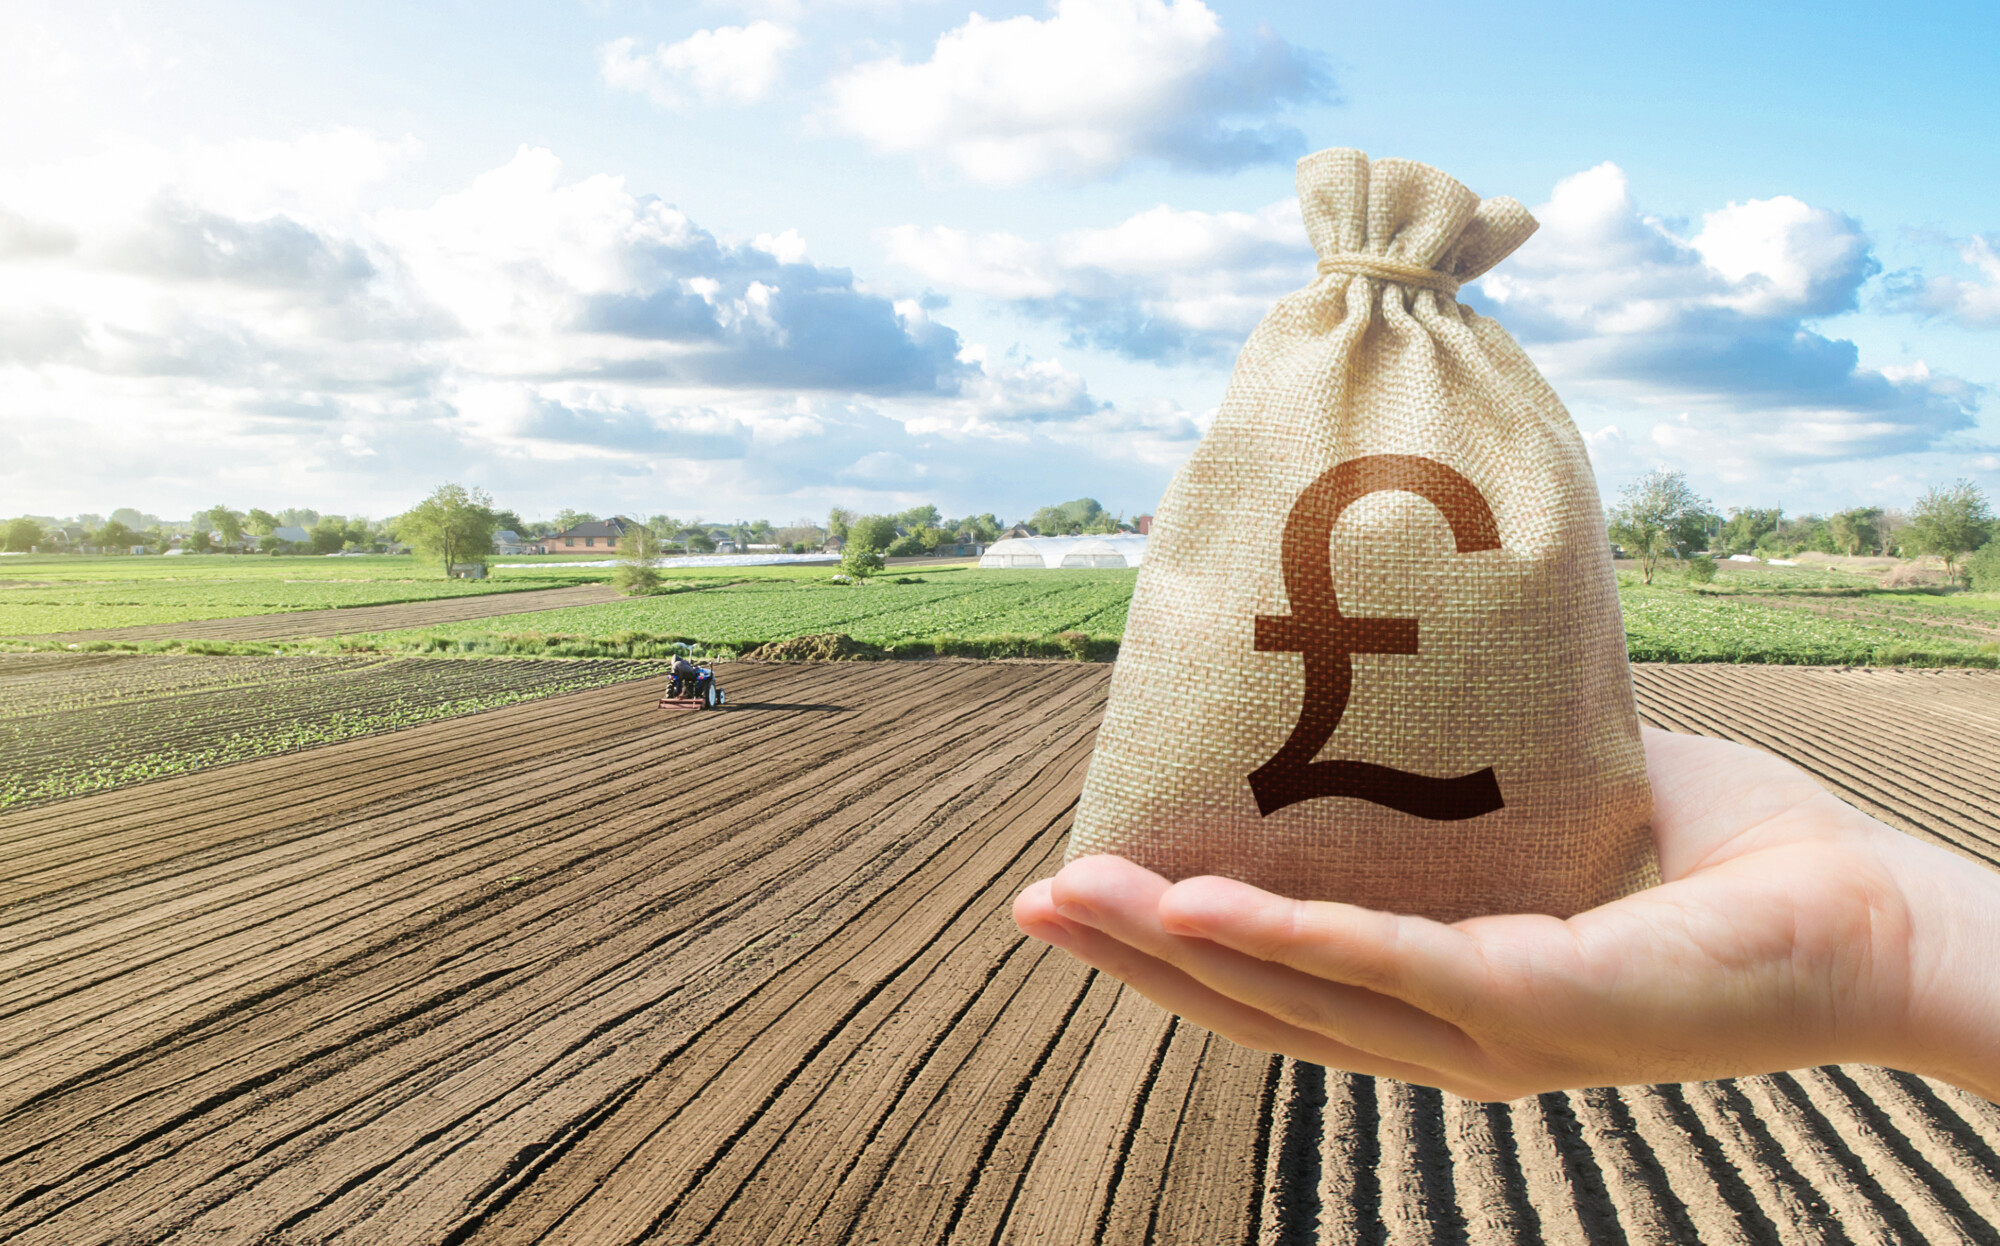 Hand with british pound sterling and a farmer on a tractor works on farm field. Financial support, subsidies for agriculture.